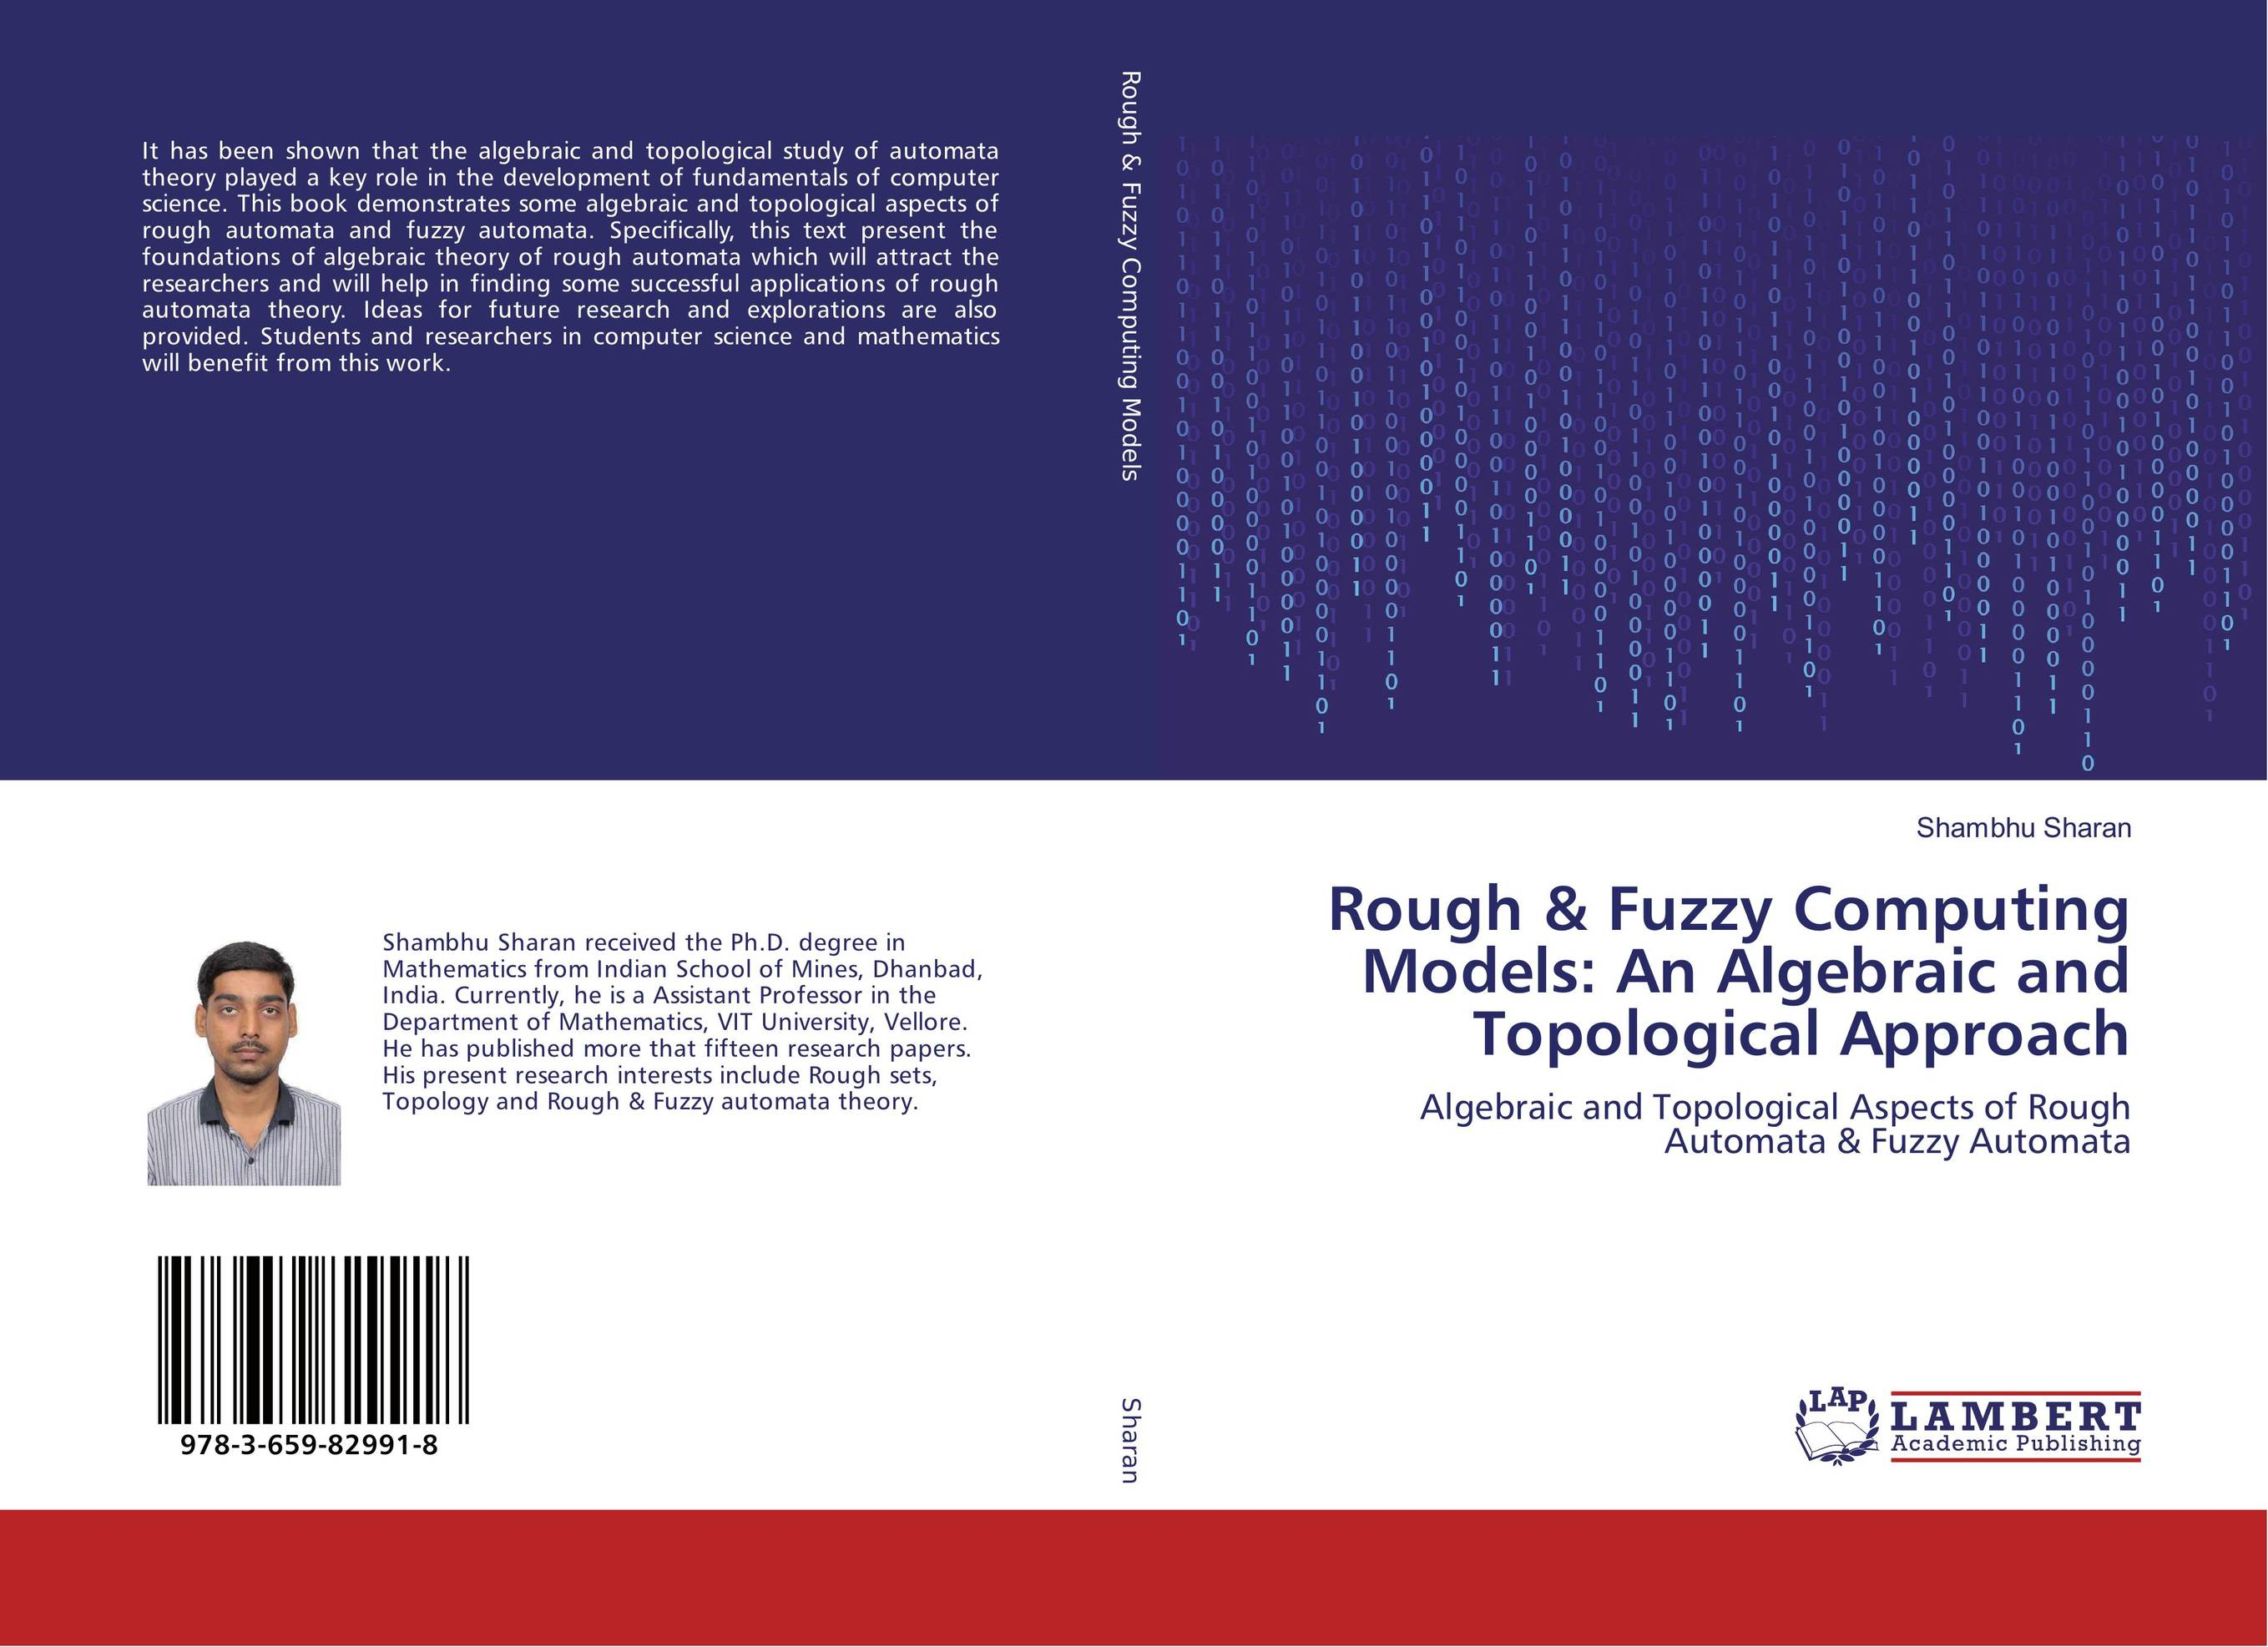 Rough & Fuzzy Computing Models: An Algebraic and Topological Approach foundations of education an ems approach